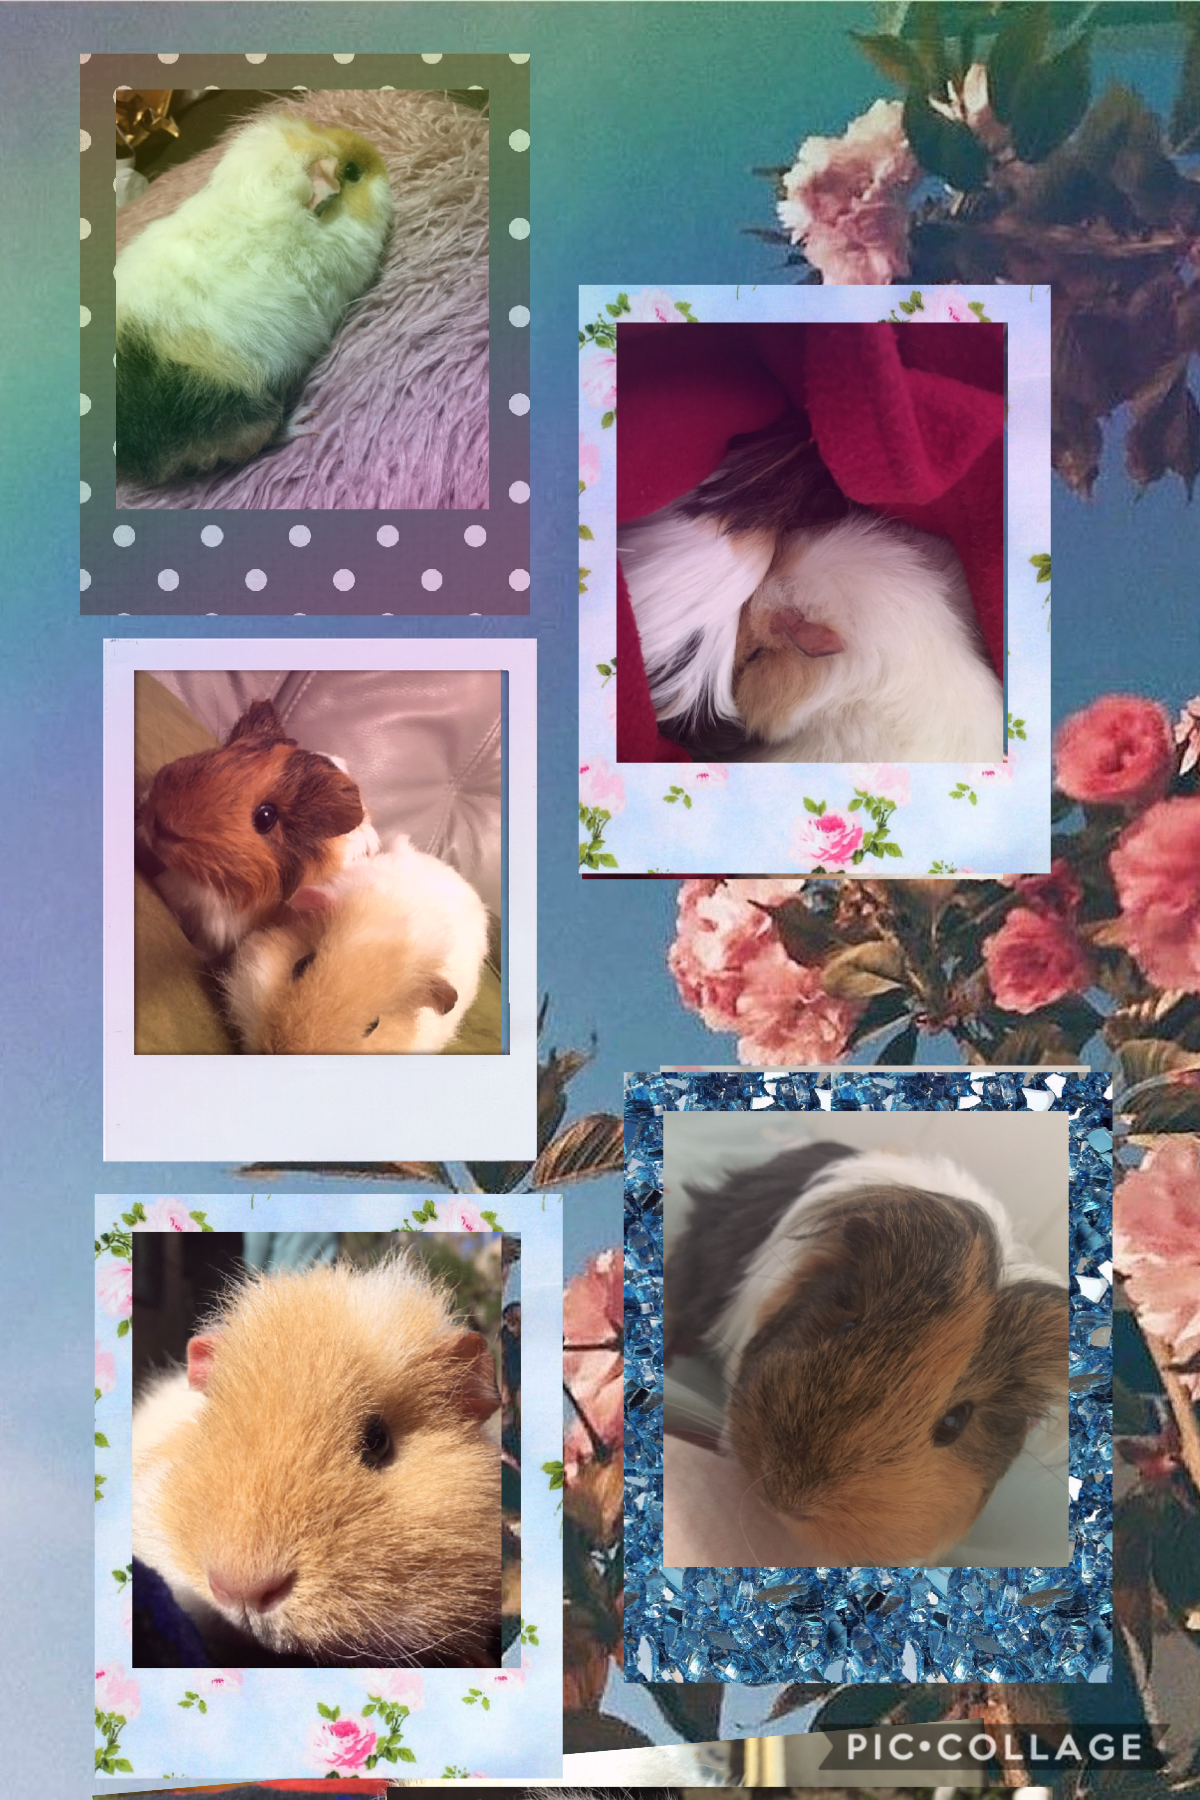 These are my pets the top left is called blossom ❤️ and the bottom right is called nutty ❤️ I got them as a present for my birthday and I think they are just sooo adorable ❤️